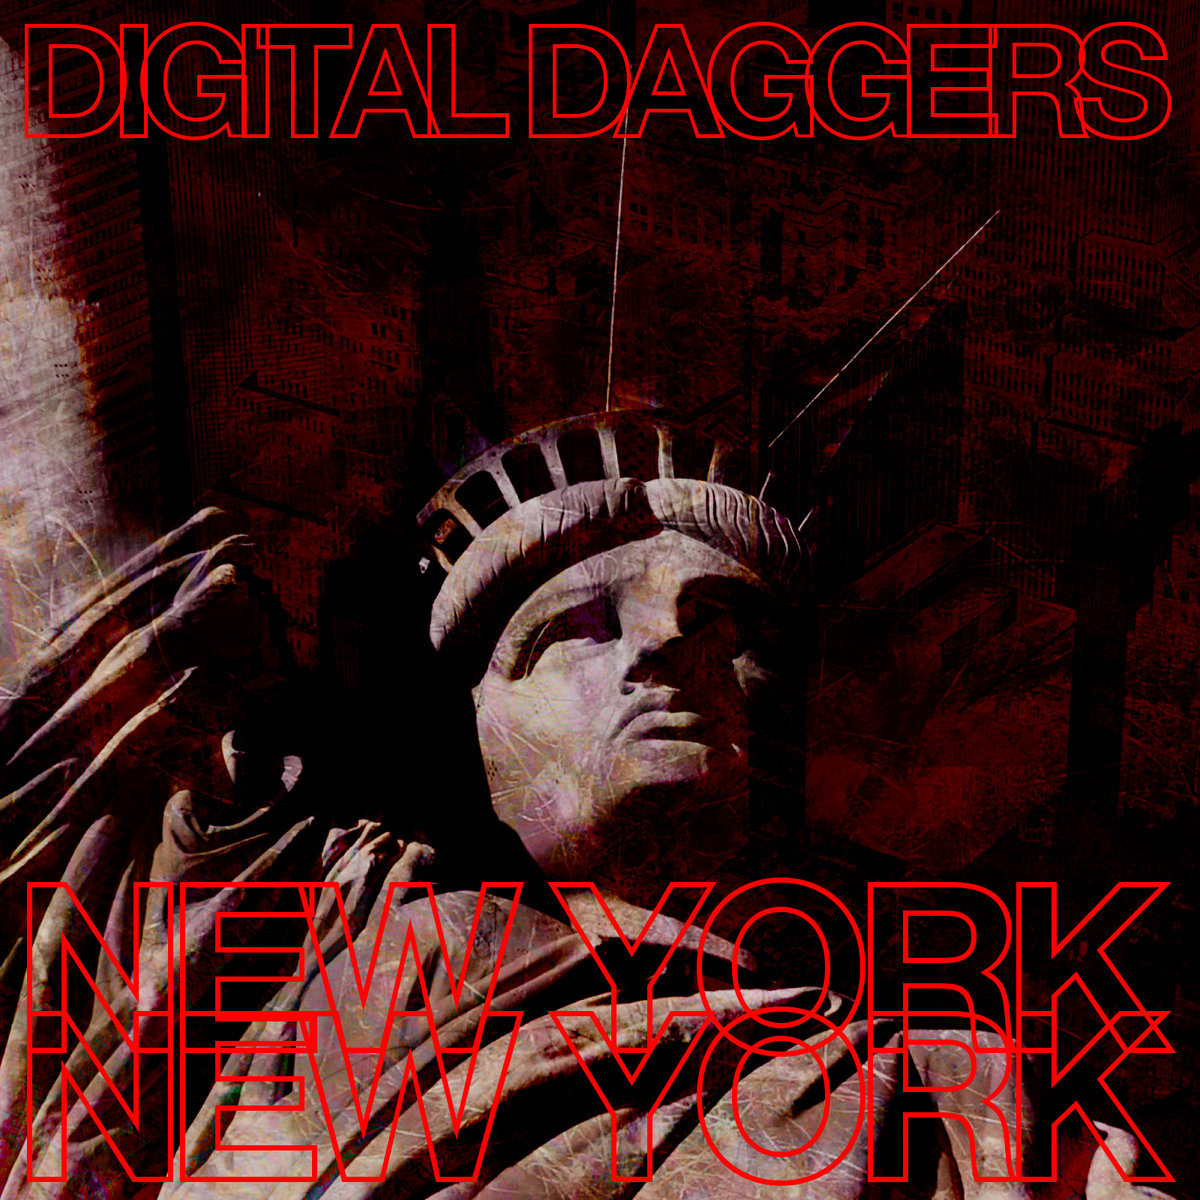 Digital Daggers Logo Music | Digital Daggers